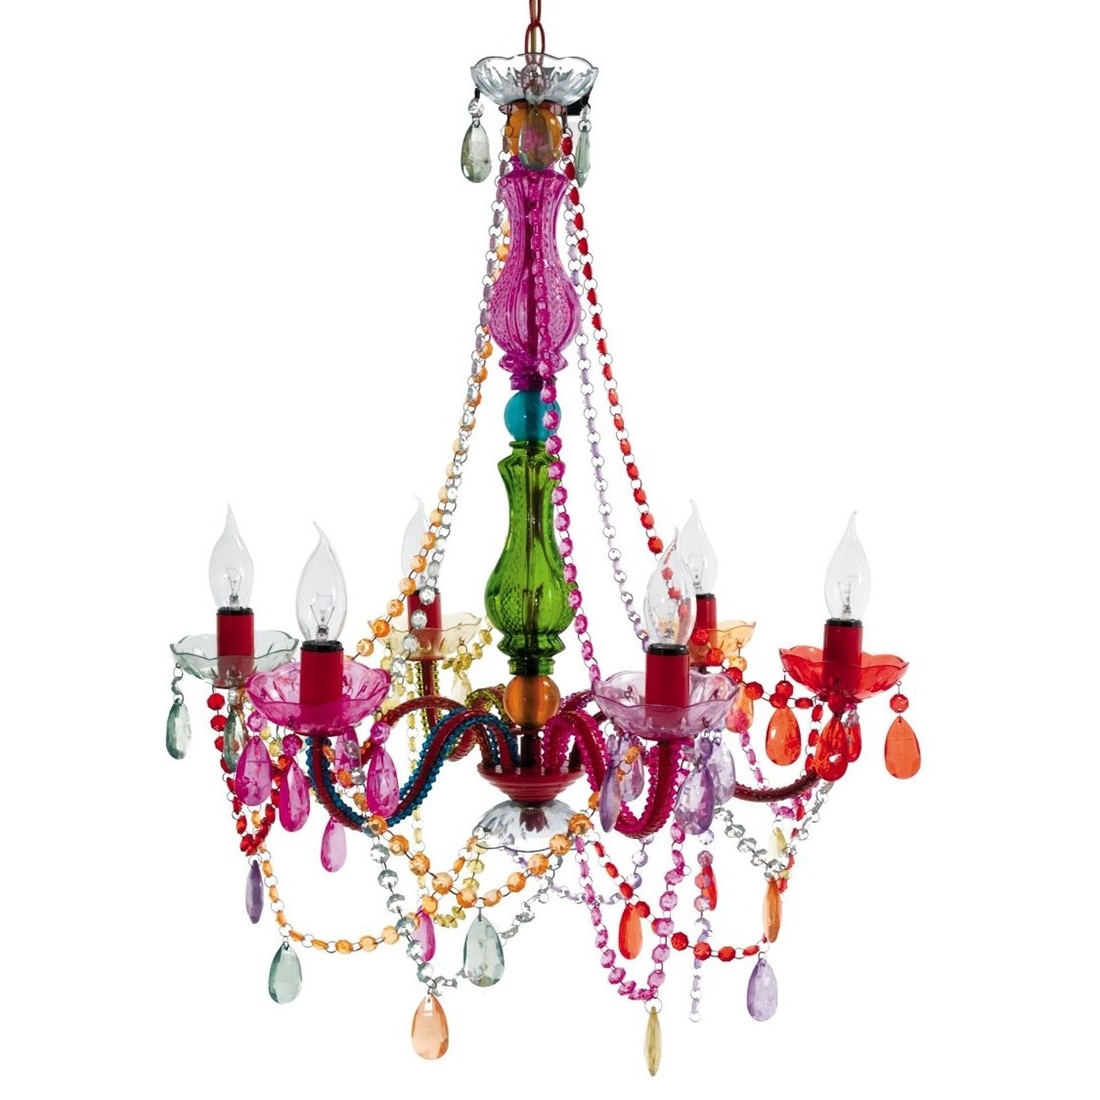 Gypsy Chandelier Adds A Touch Of Outrageous Baroque Class To Any With Regard To Popular Pink Gypsy Chandeliers (View 6 of 20)